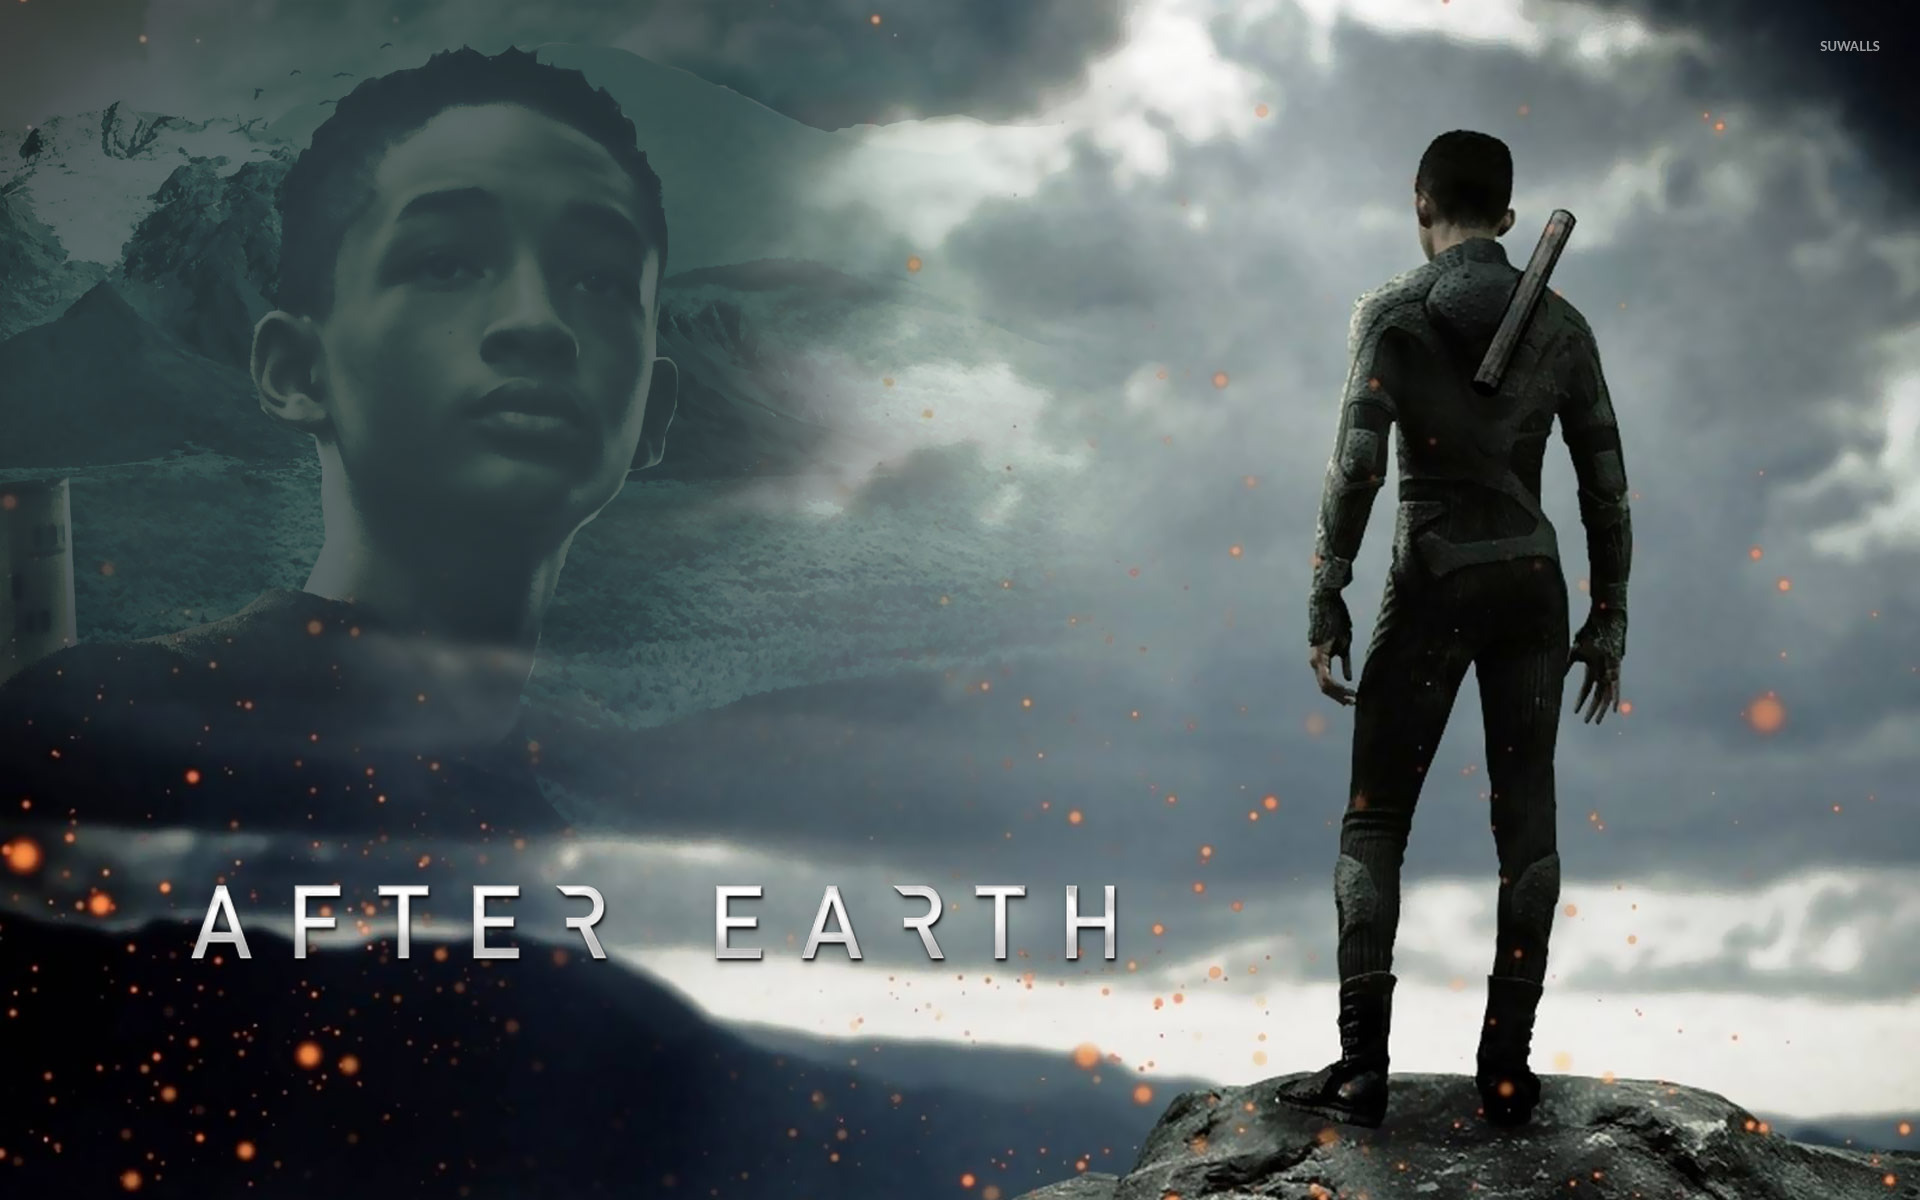 Kitai Raige   After Earth wallpaper   Movie wallpapers   19817 1920x1200